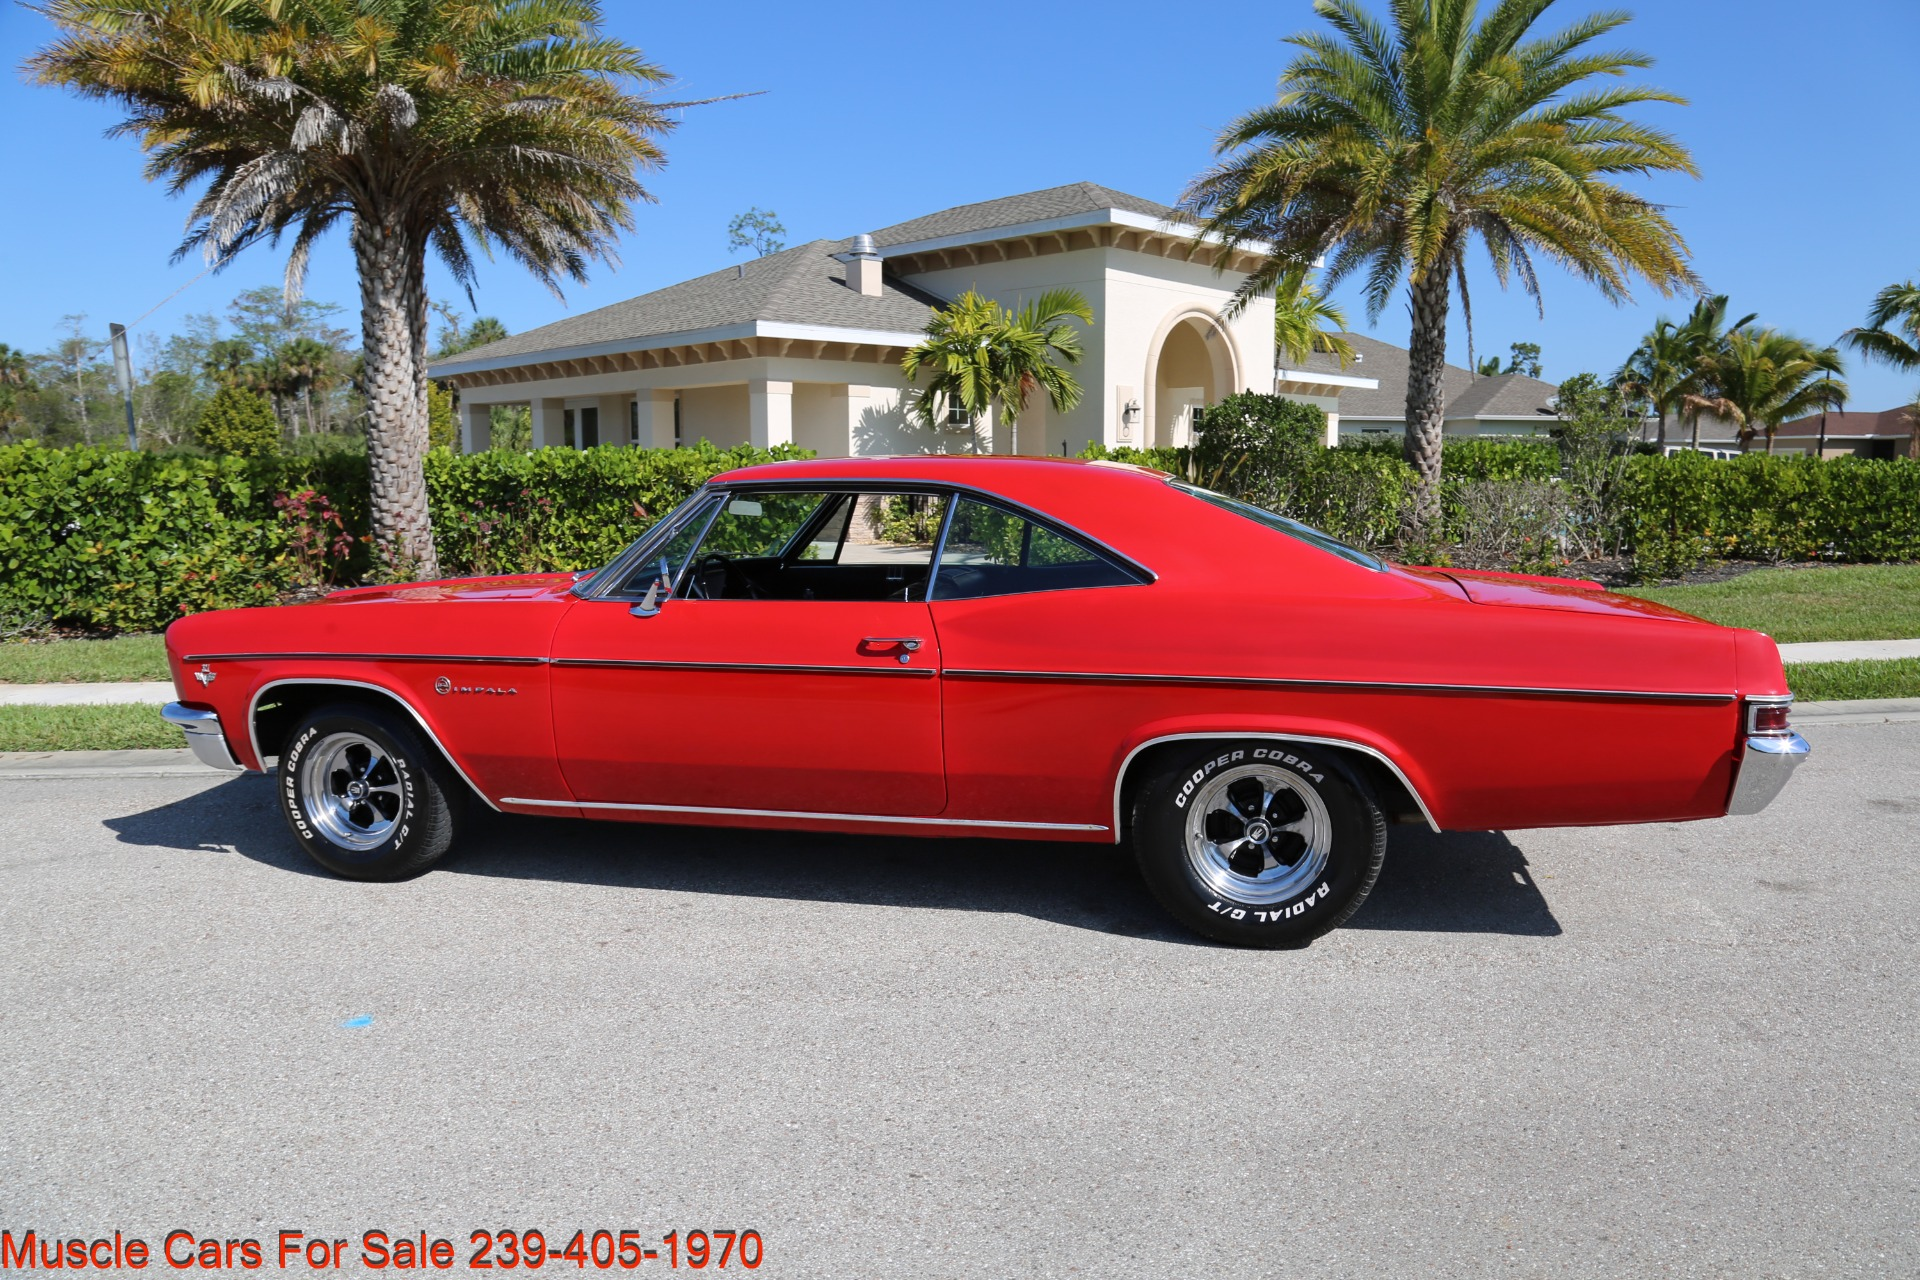 Used 1966 CHEVY IMPALA Impala for sale $24,000 at Muscle Cars for Sale Inc. in Fort Myers FL 33912 8